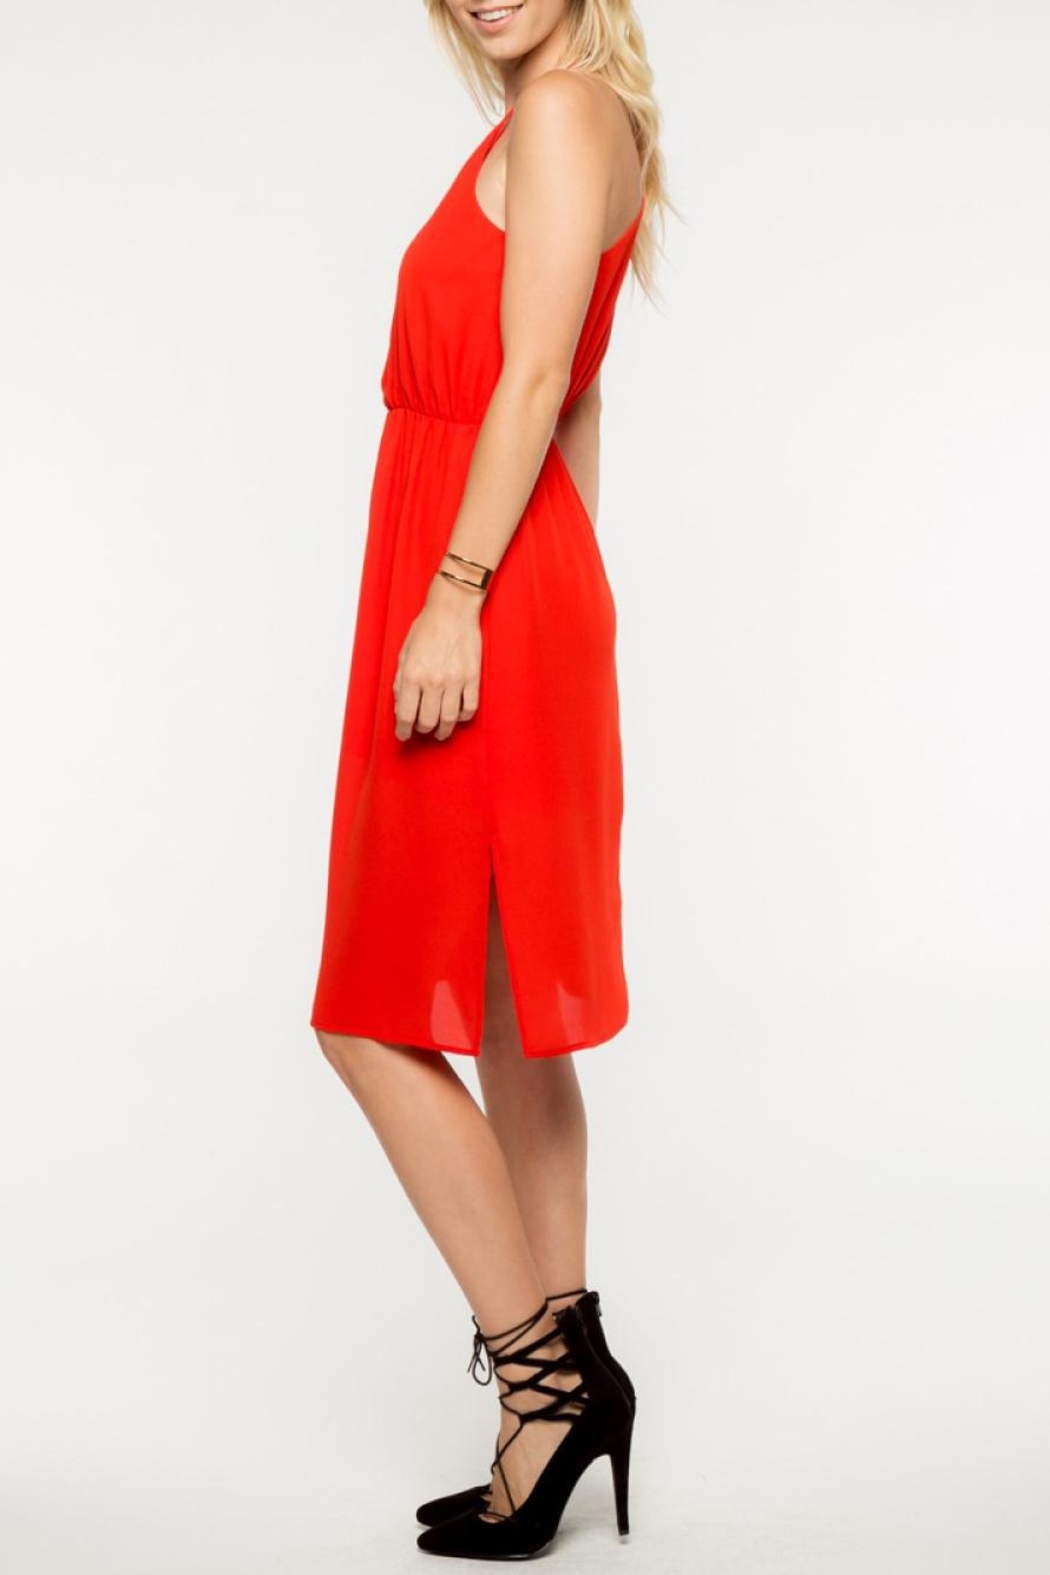 Everly Red Midi Dress - Front Full Image